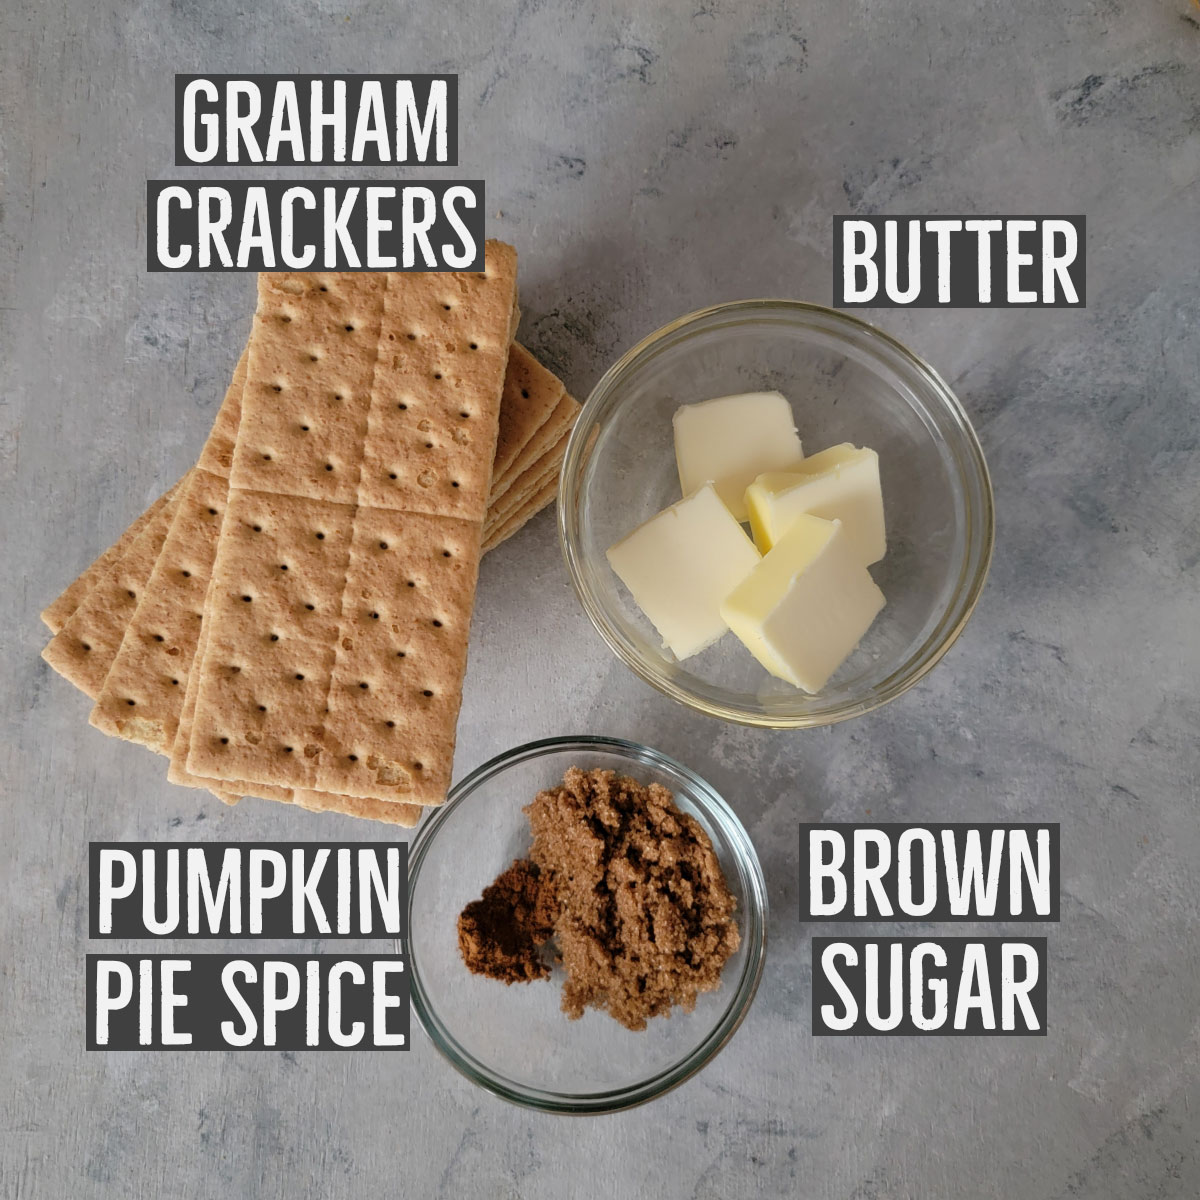 Ingredients shown for crust - graham crackers, butter, brown sugar and pumpkin pie spice.